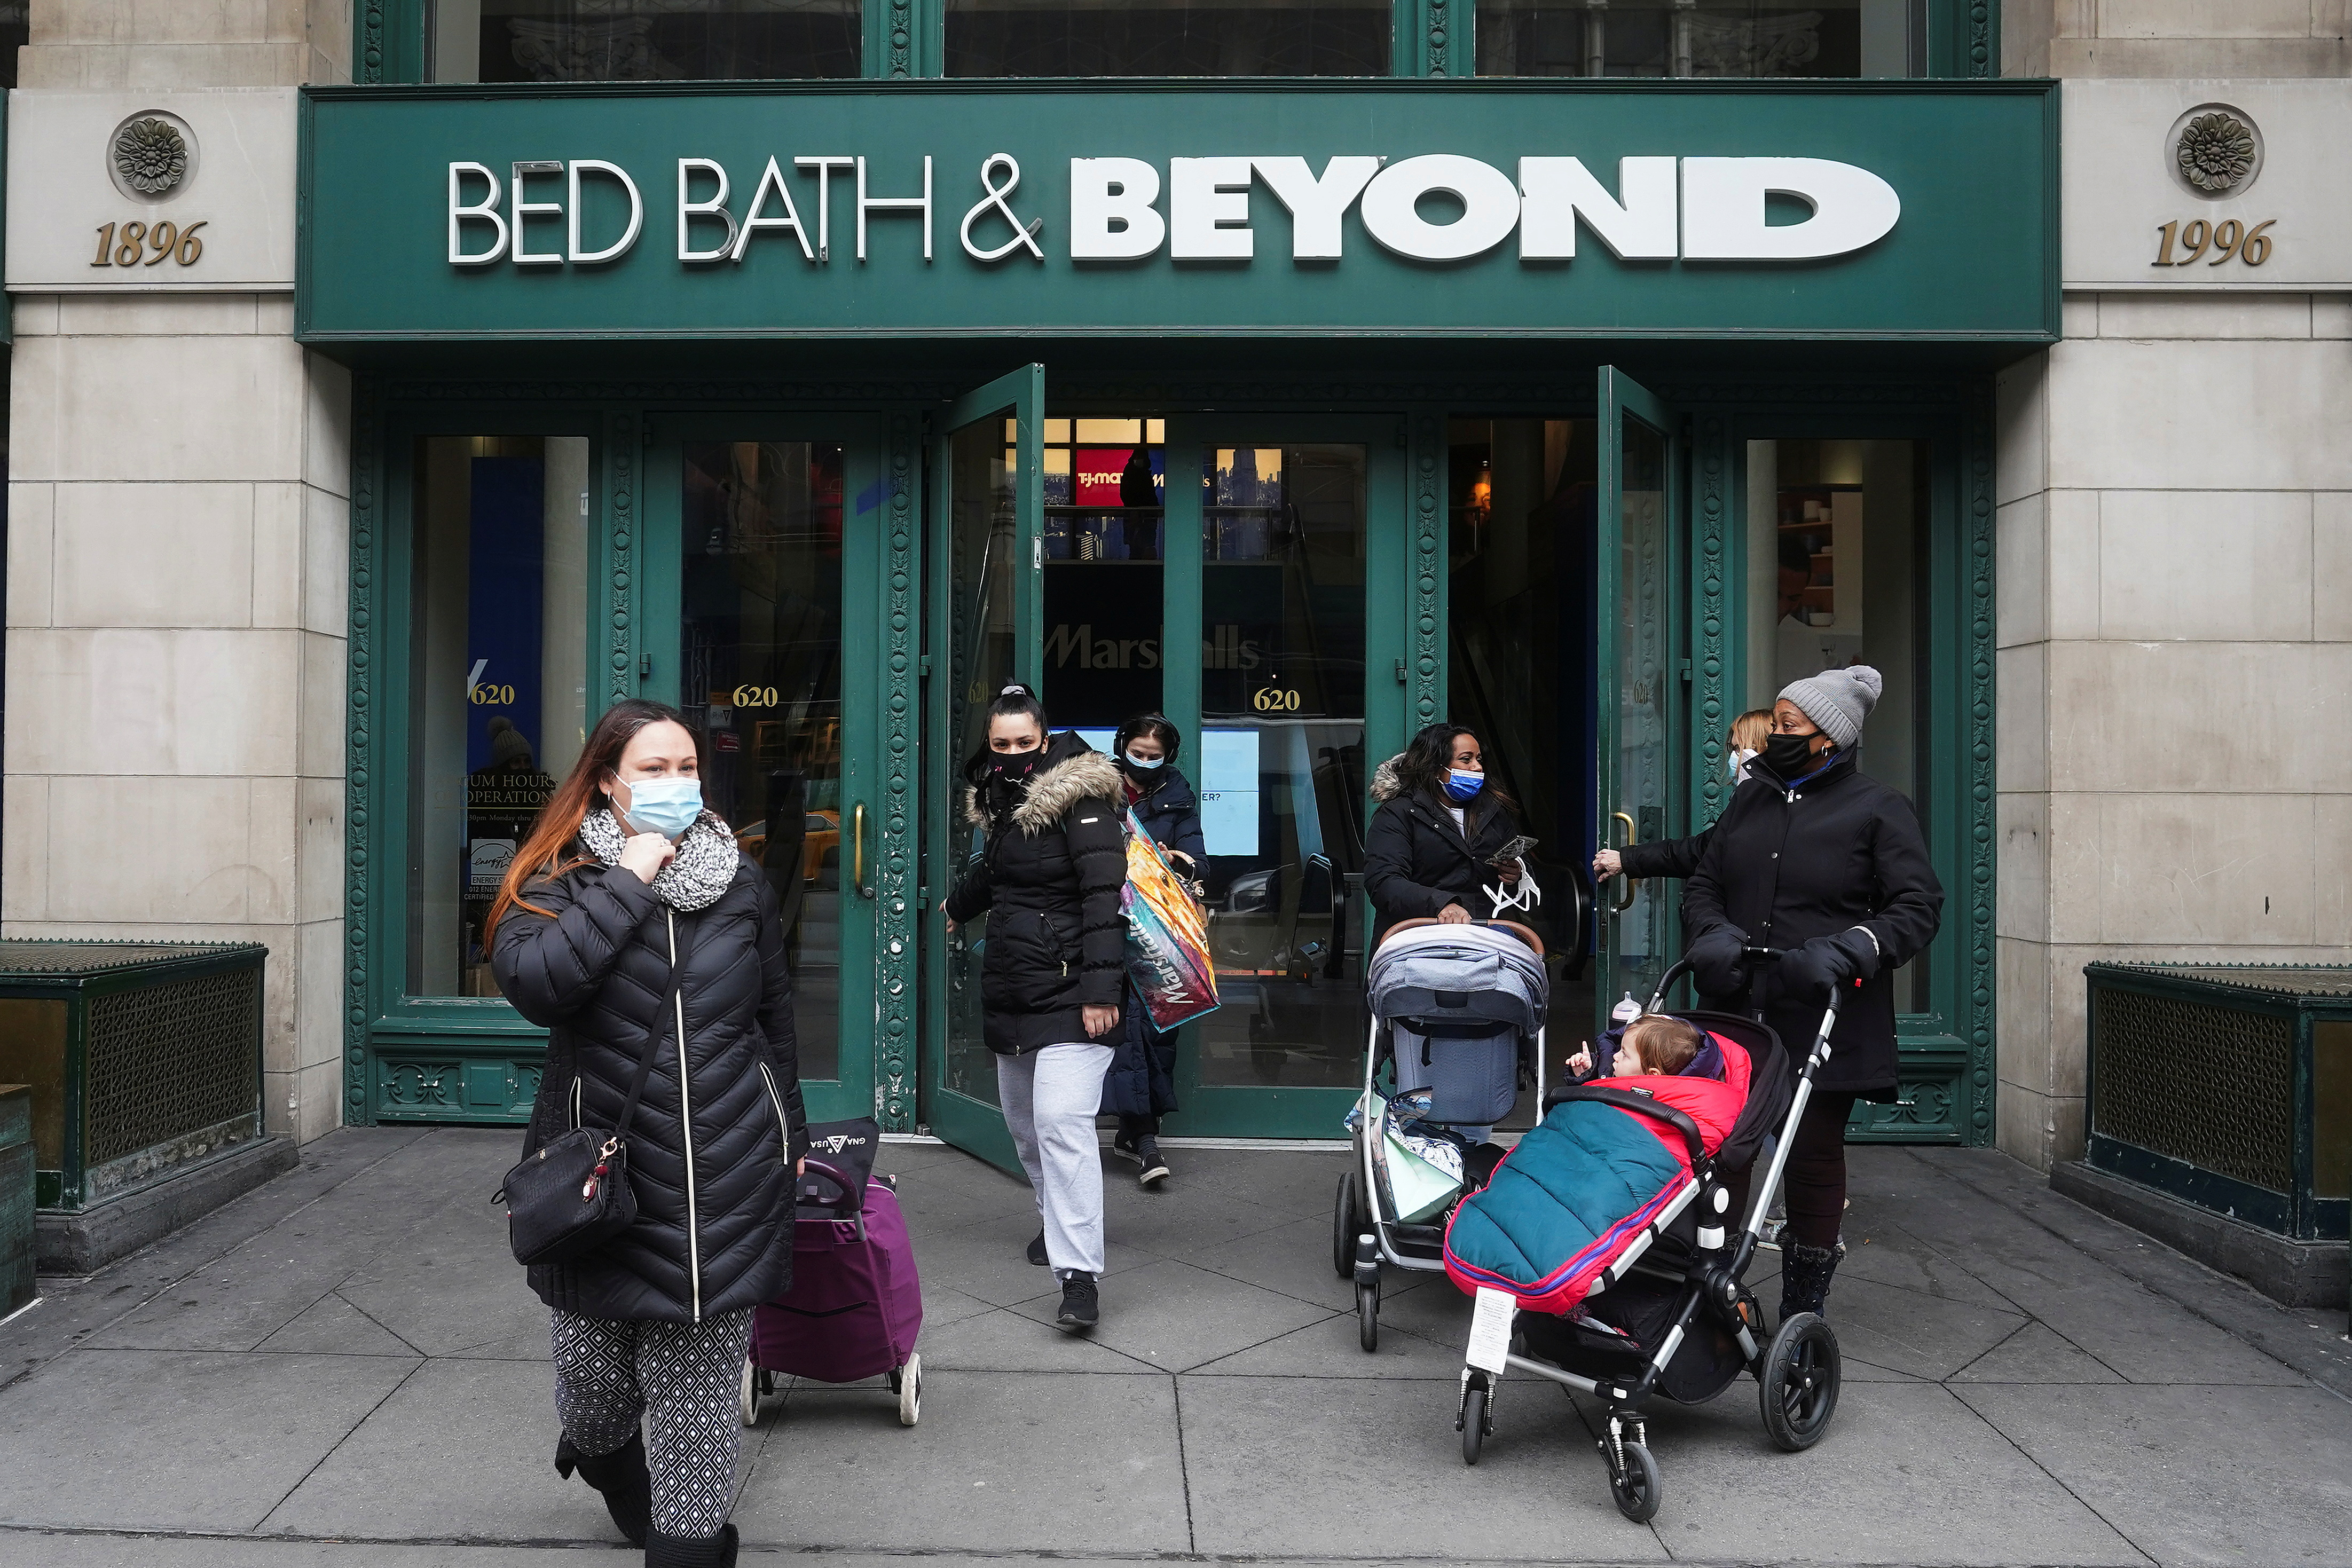 People walk out of a Bed Bath & Beyond amid the coronavirus disease (COVID-19) pandemic in the Manhattan borough of New York City, New York, U.S., January 27, 2021. REUTERS/Carlo Allegri